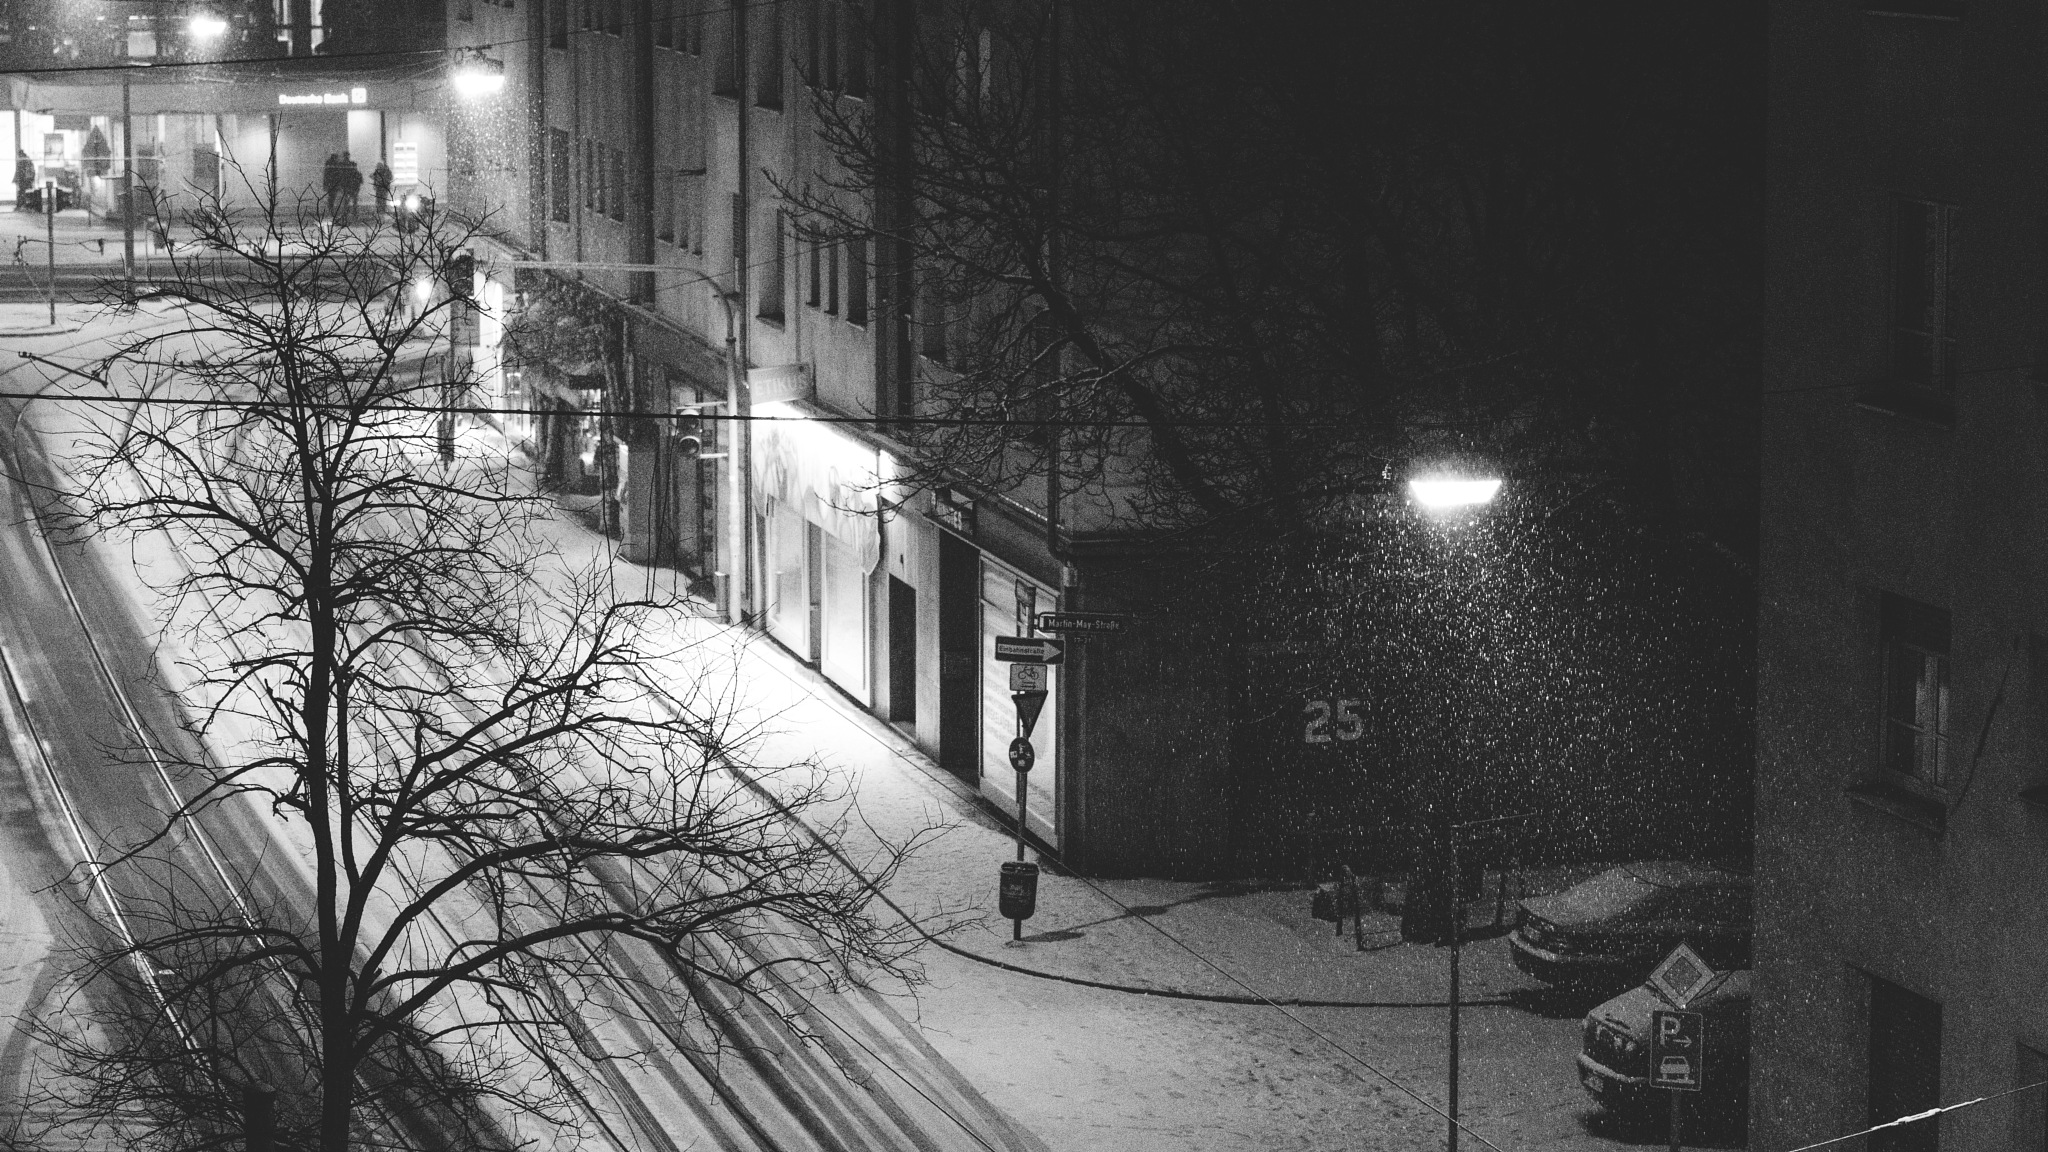 a street view in winter by Stefan Lauterbach